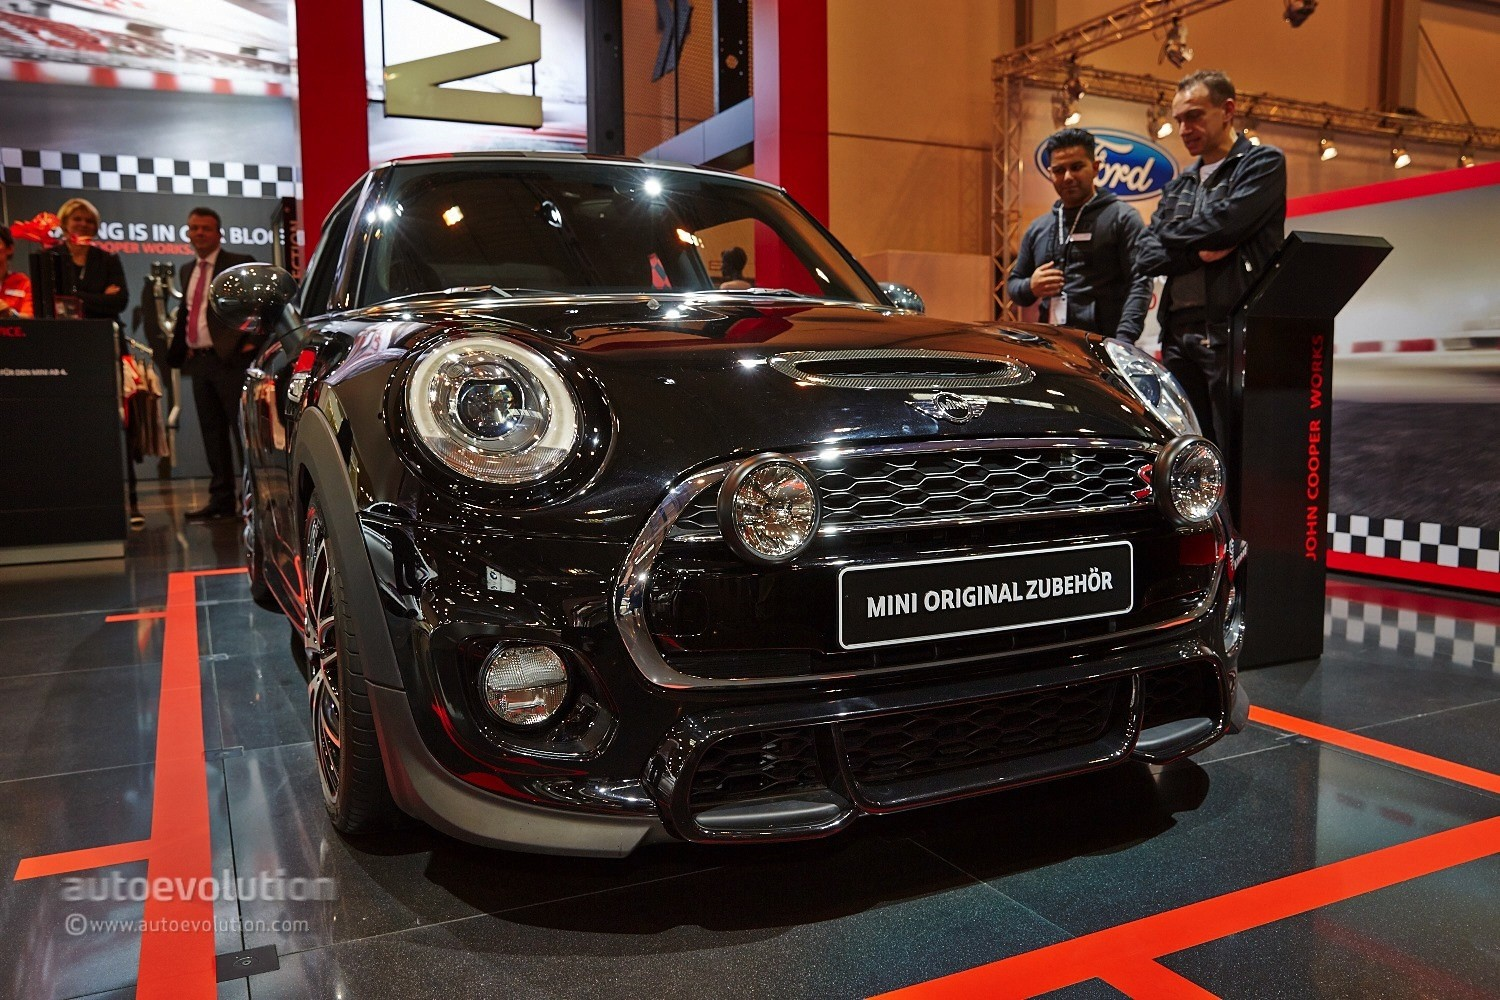 2015 mini cooper s gets 211 hp with jcw tuning kit at essen live photos autoevolution. Black Bedroom Furniture Sets. Home Design Ideas